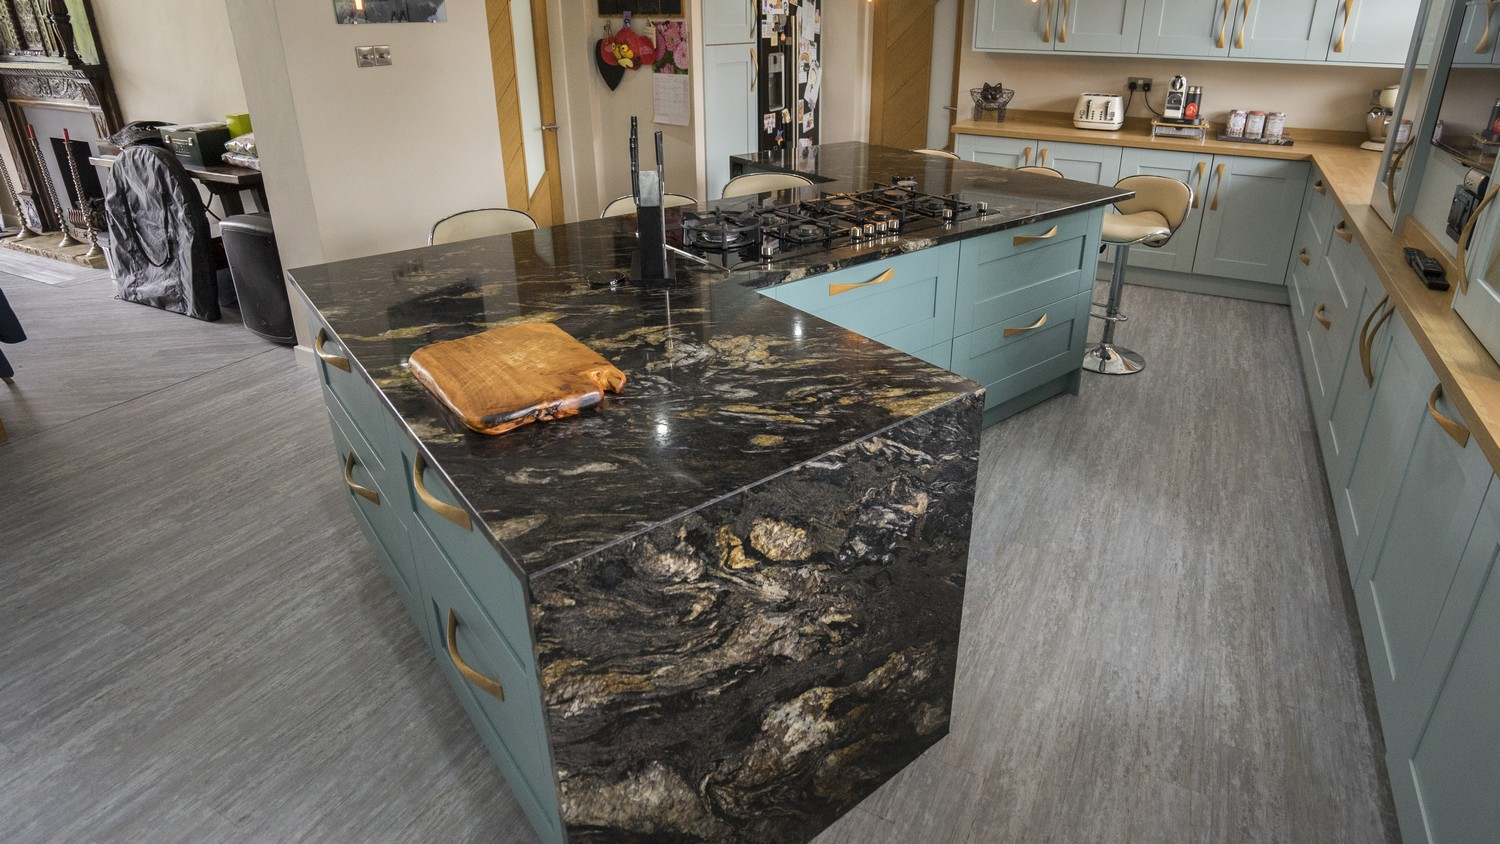 Another view of the stunning marble worktop using on the island of this kitchen.